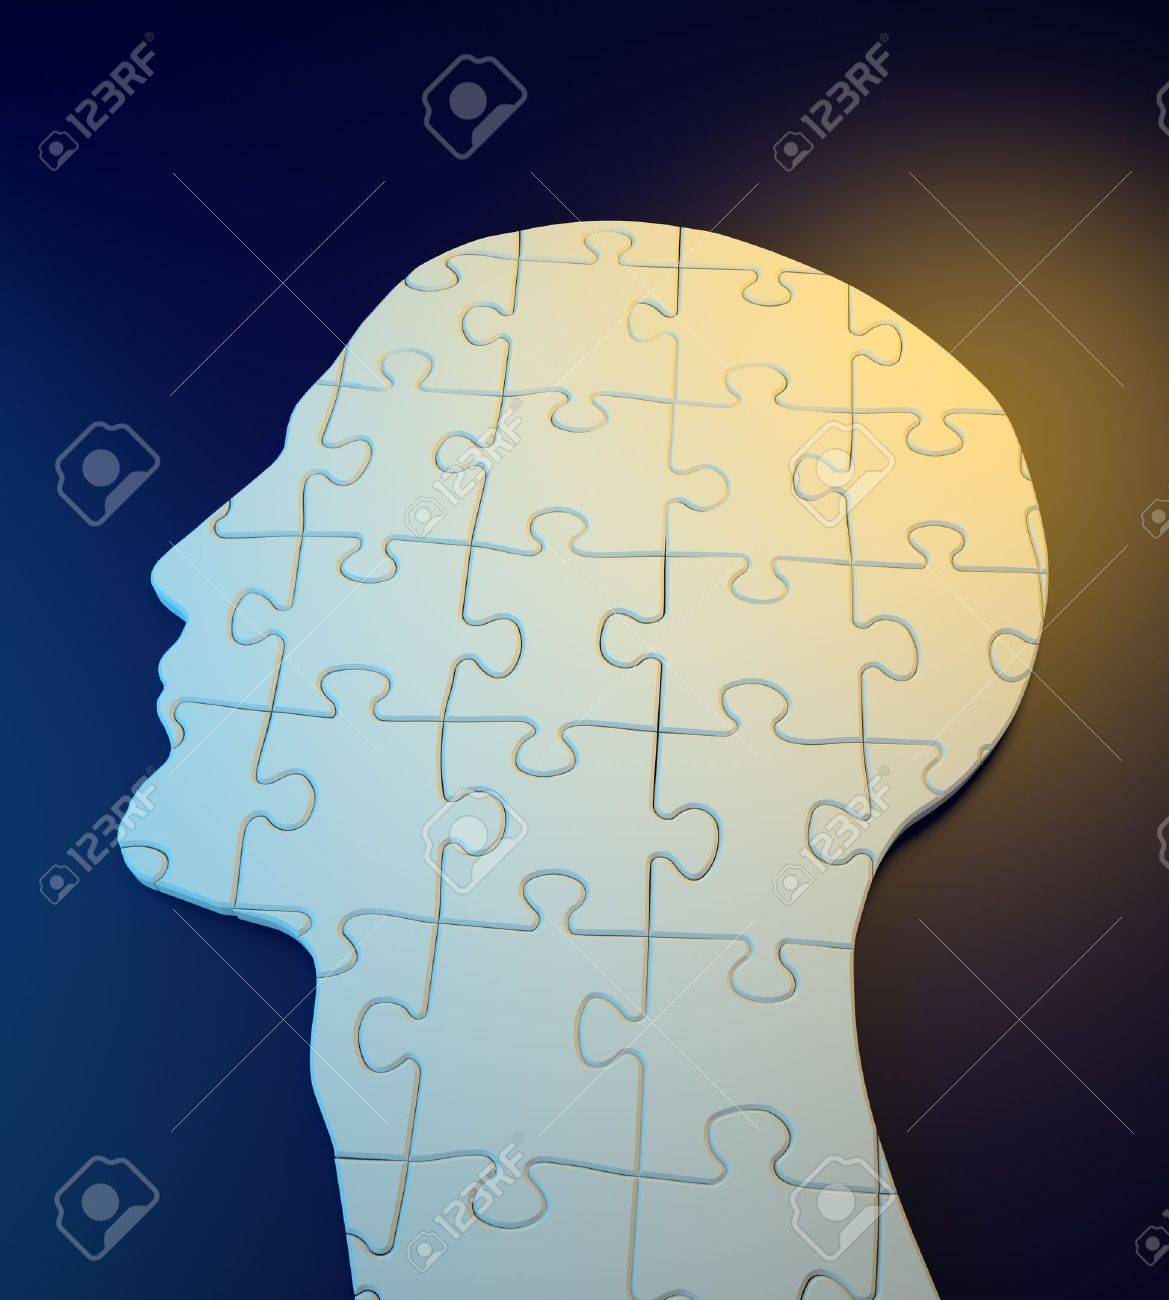 Human head build out of puzzle pieces Stock Photo - 14806888